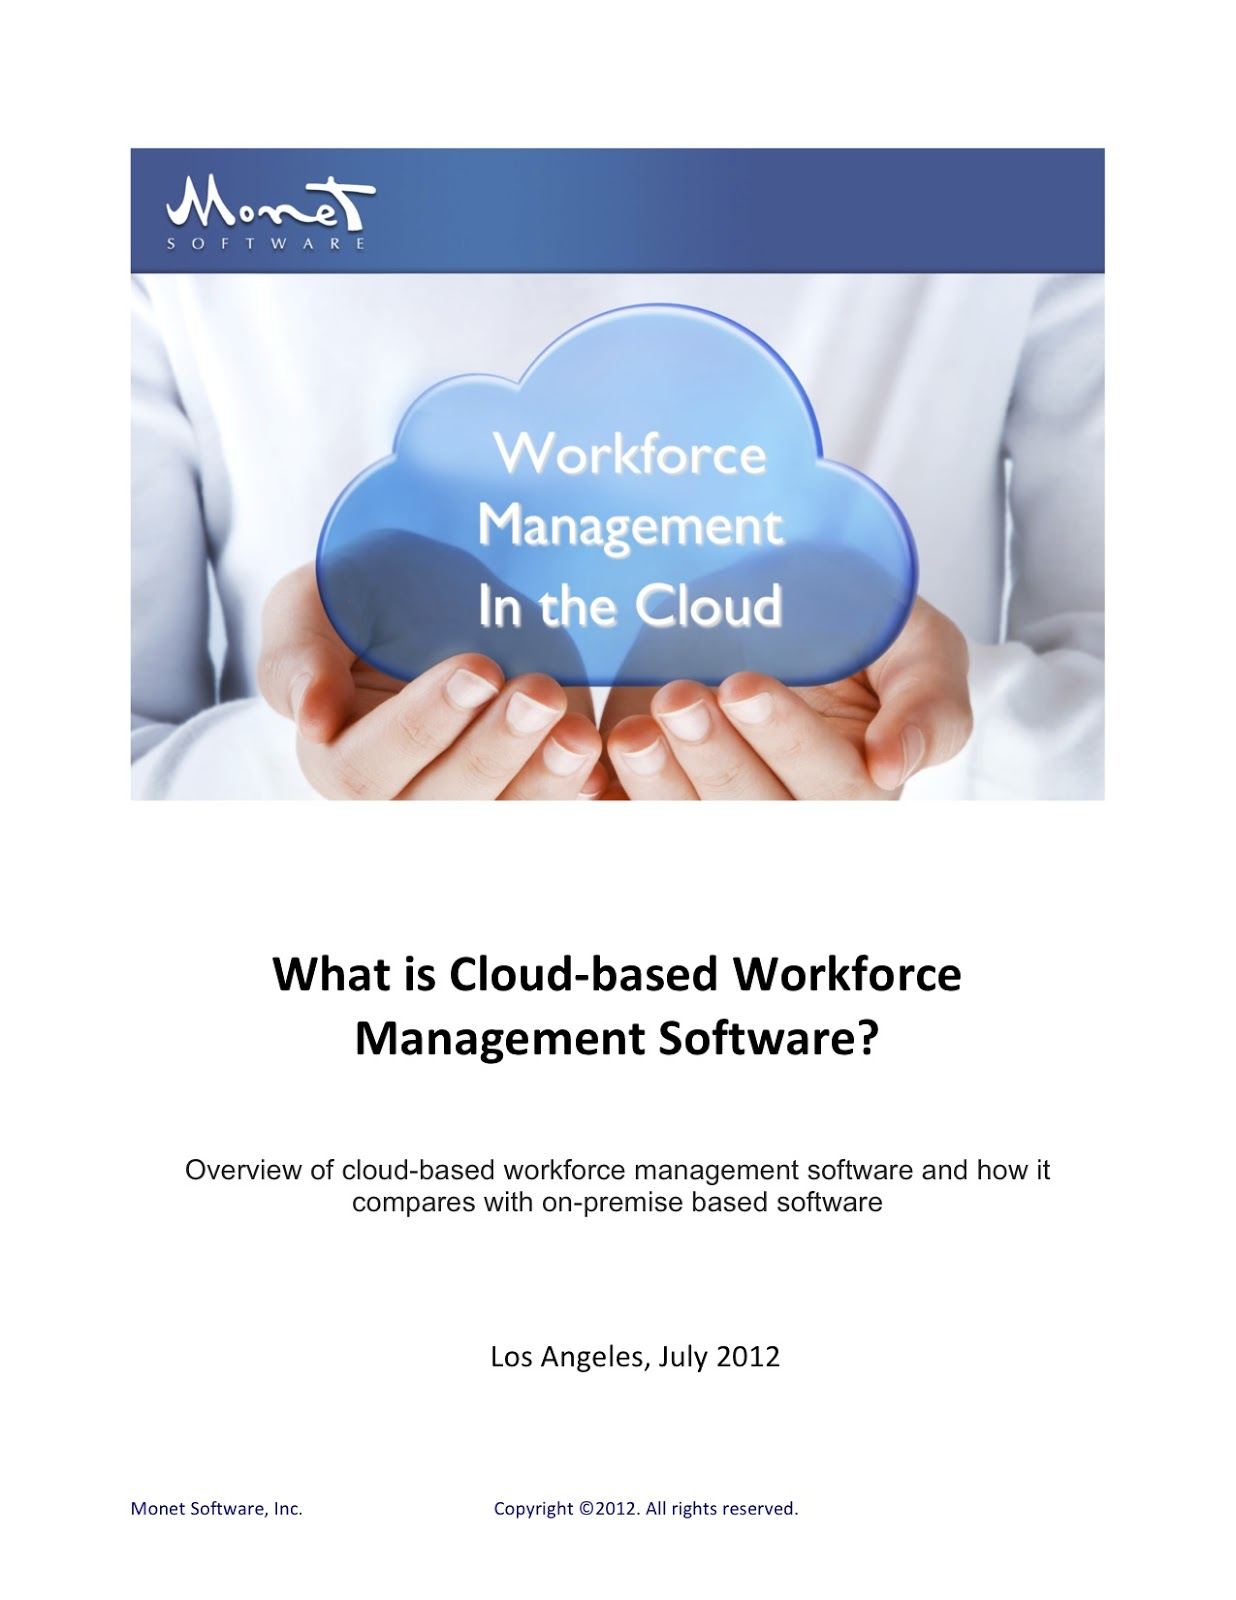 workforce management in the cloud whitepaper